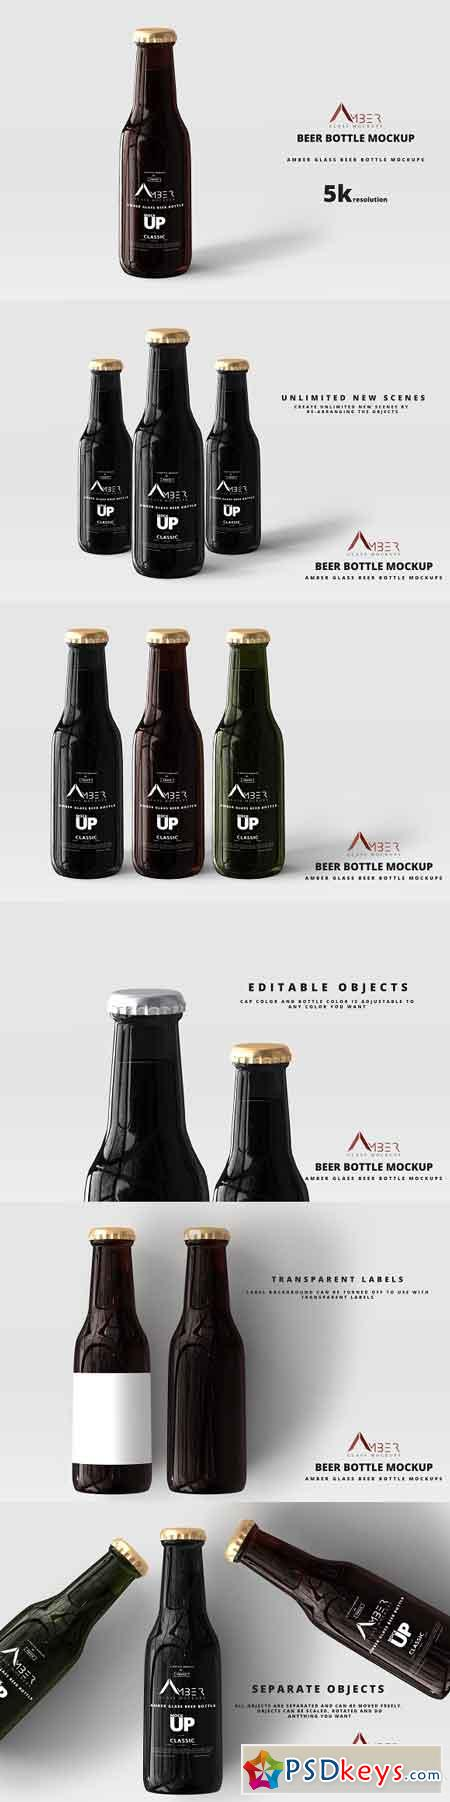 Amber Glass Beer Bottle Mockup 04 2941876